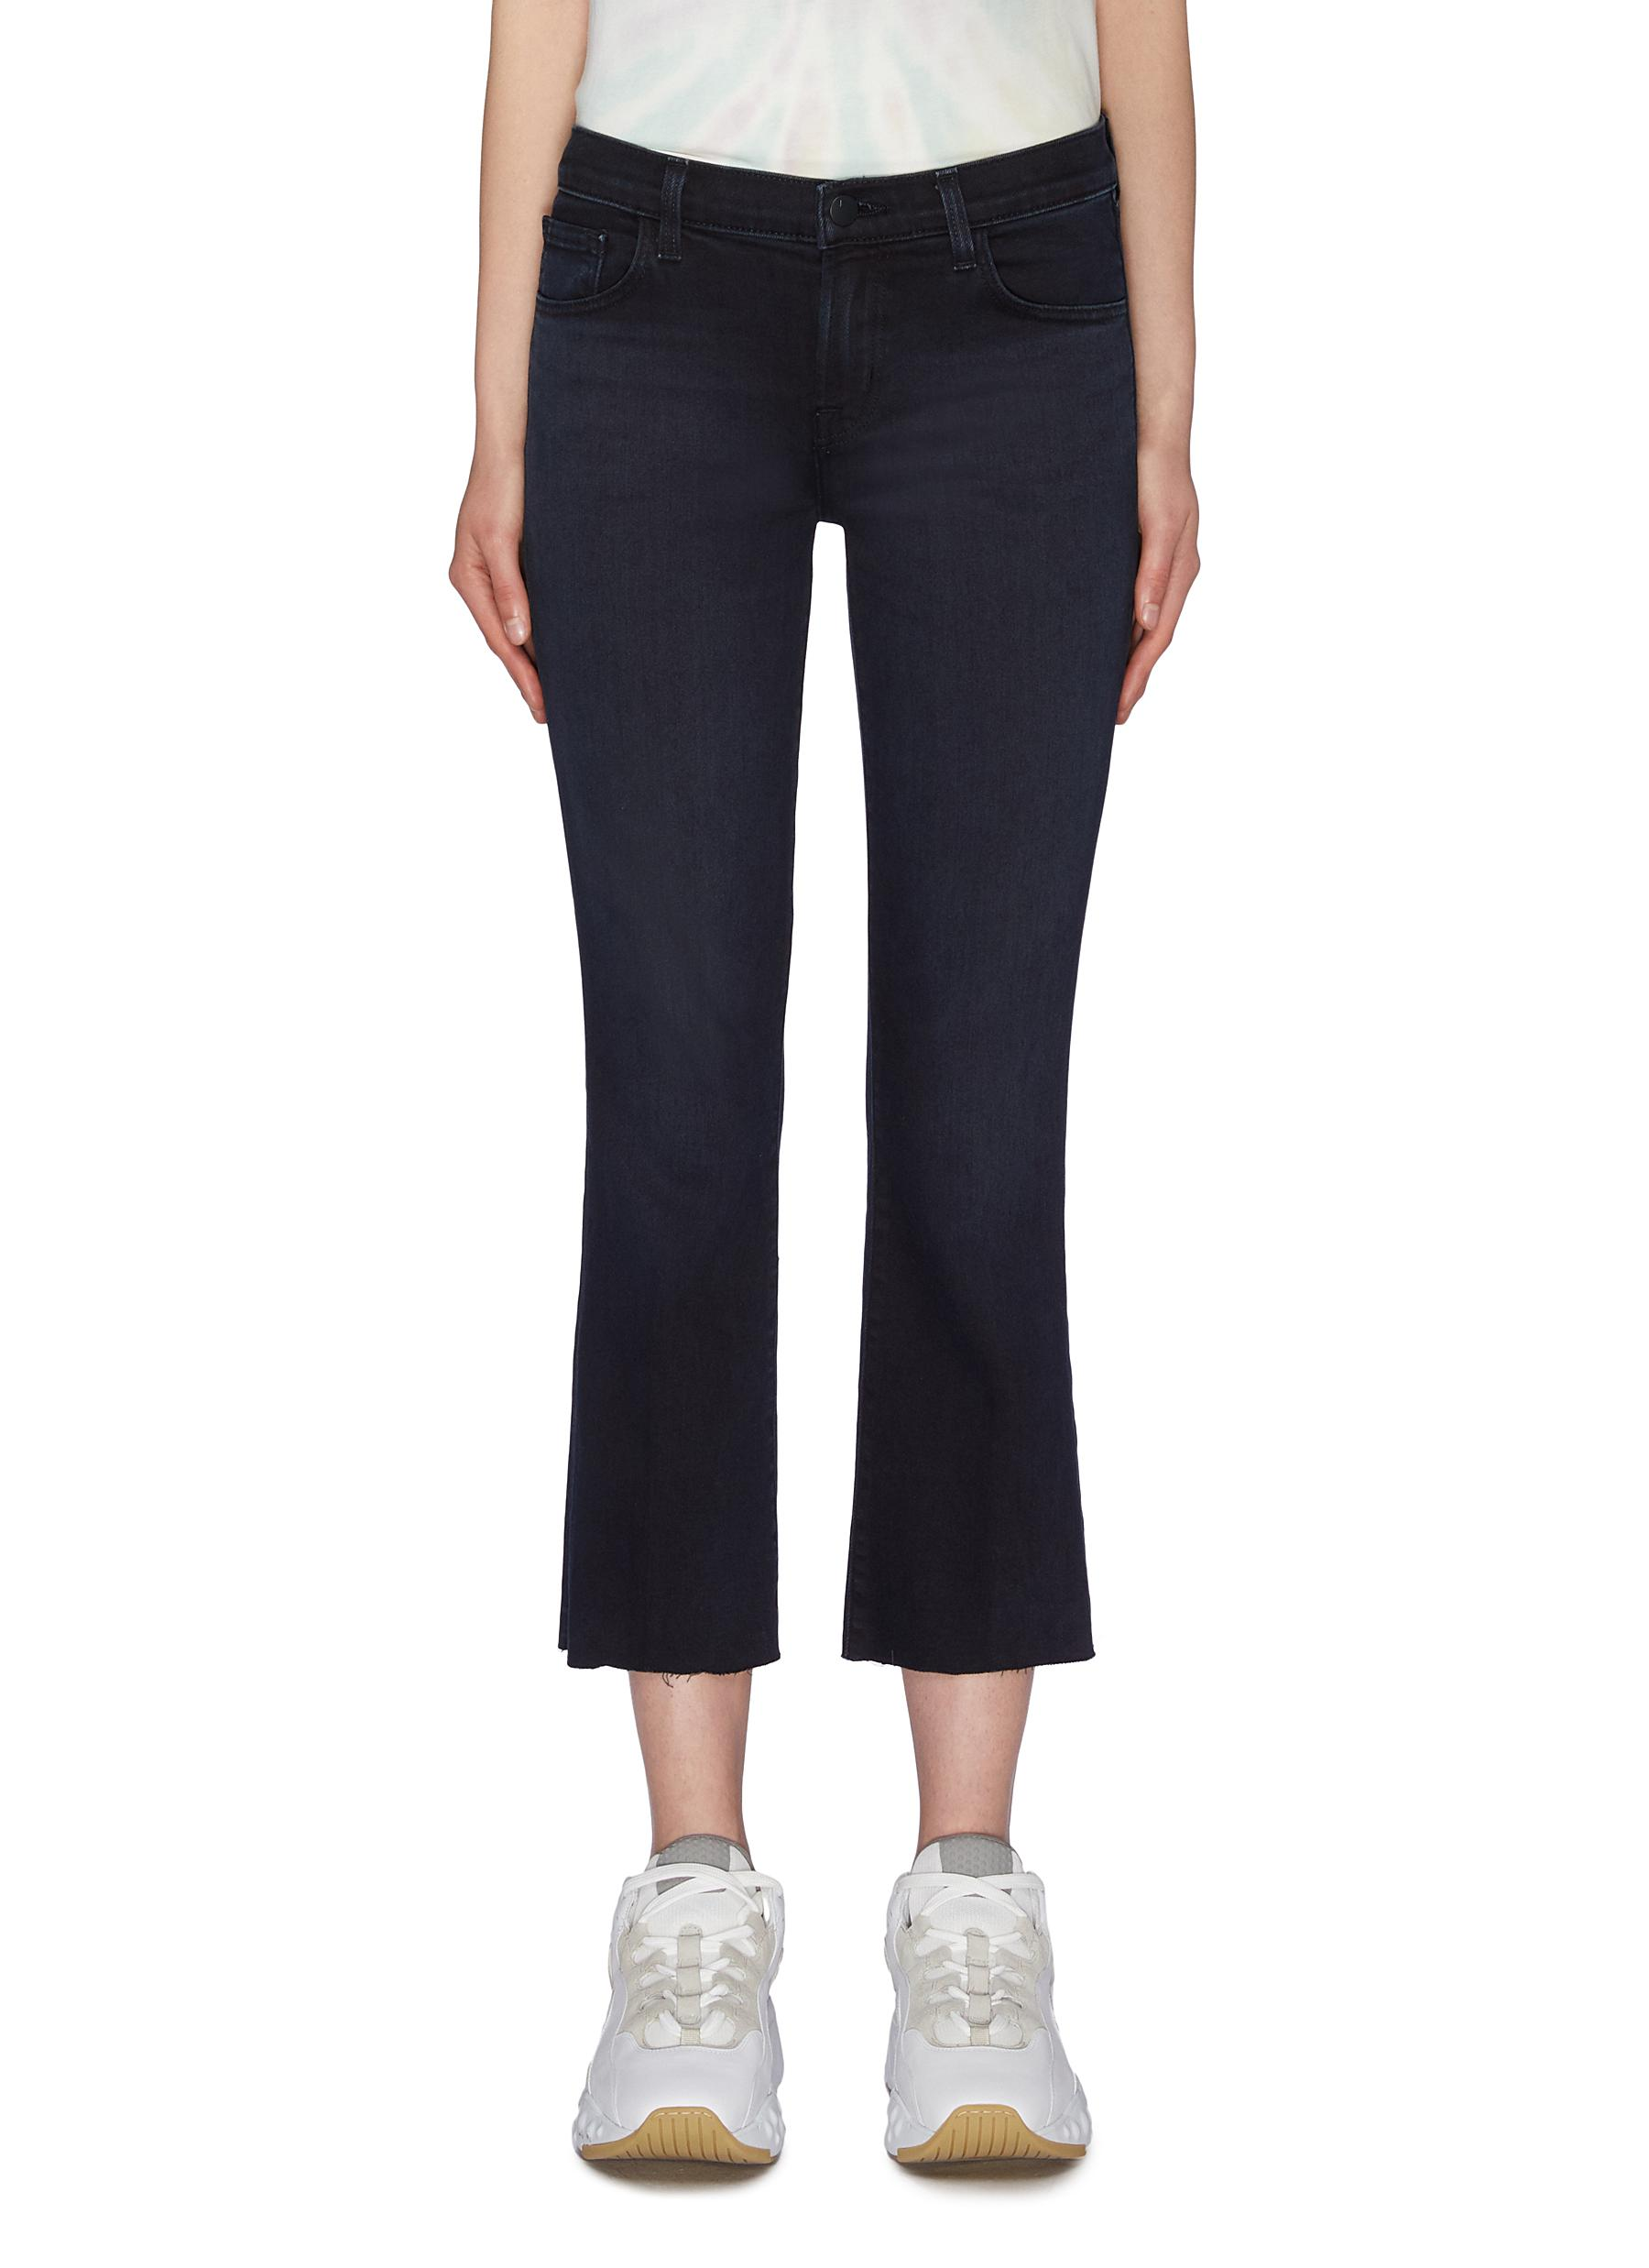 Selena raw cuff cropped boot cut jeans by J Brand